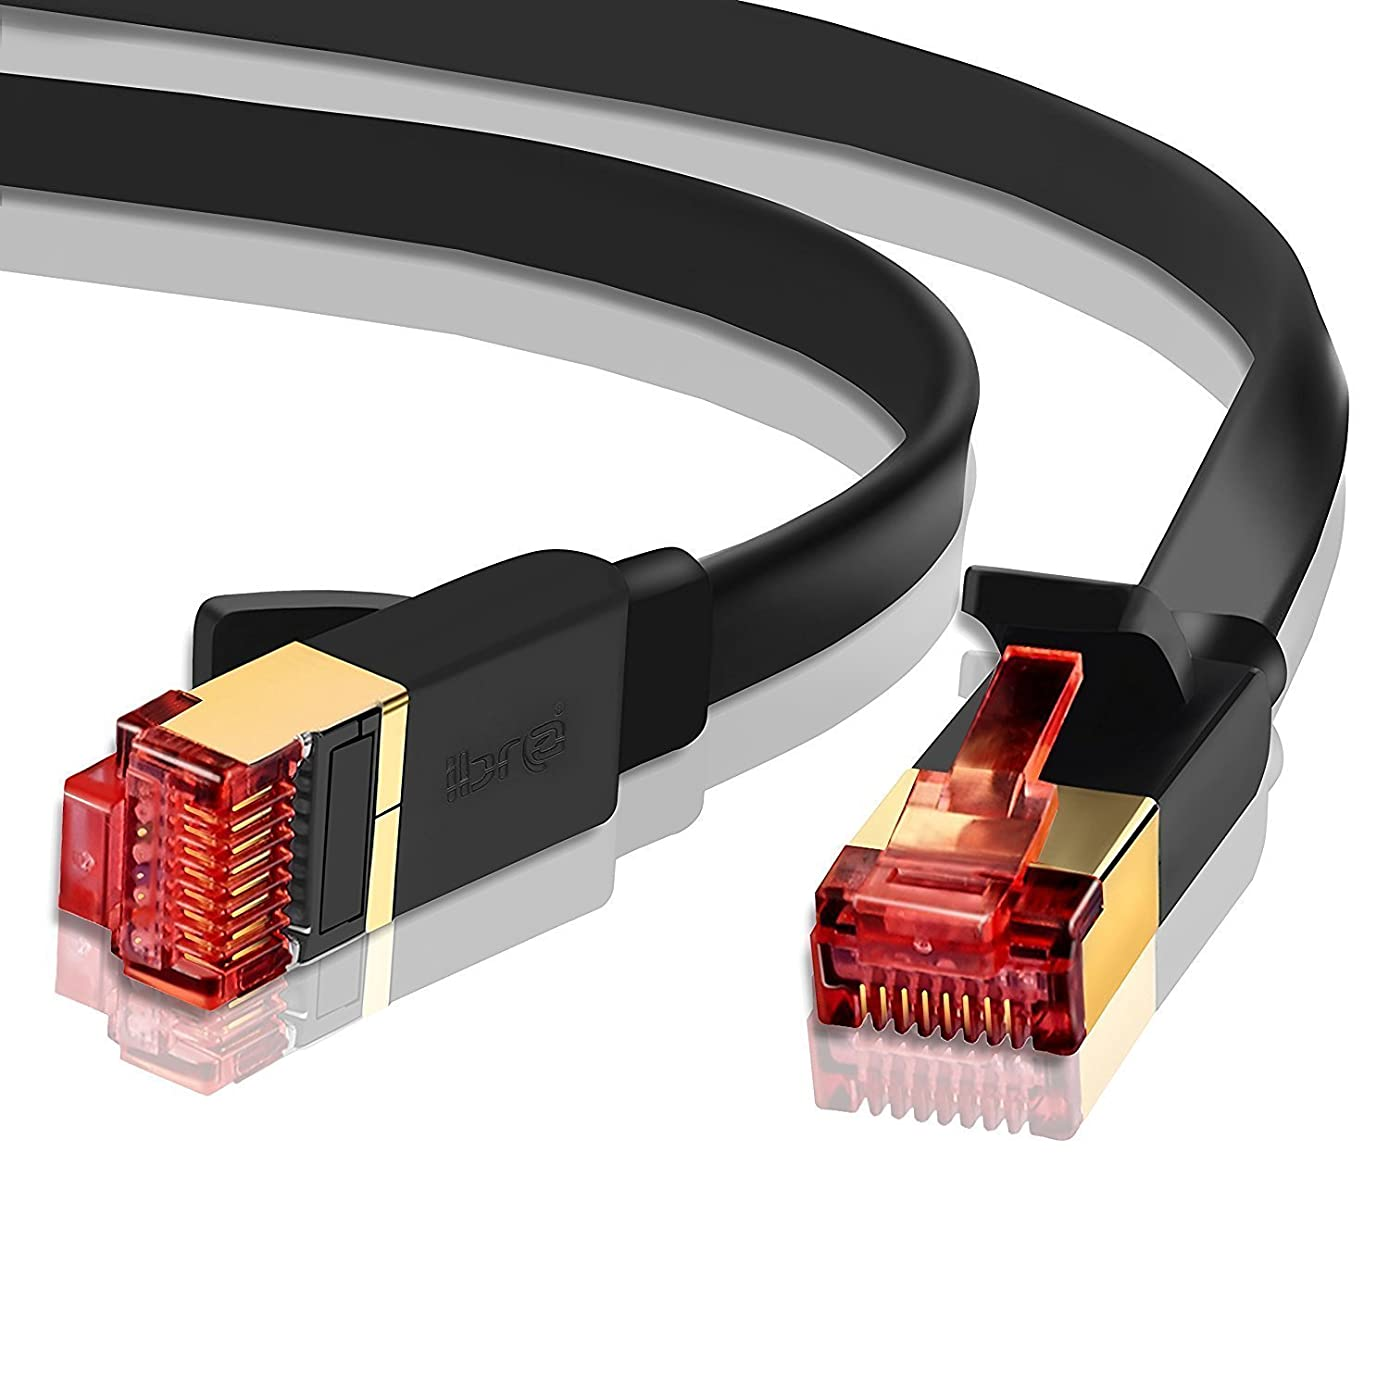 IBRA 6 Feet CAT 7 RJ45 Ethernet LAN Network Cable / CAT7 (Advanced) / 10Gbps 600MHz / S/STP Molded Network/Gold Plated Plug STP Wires/Ethernet Patch LAN Router Modem/Flat Black